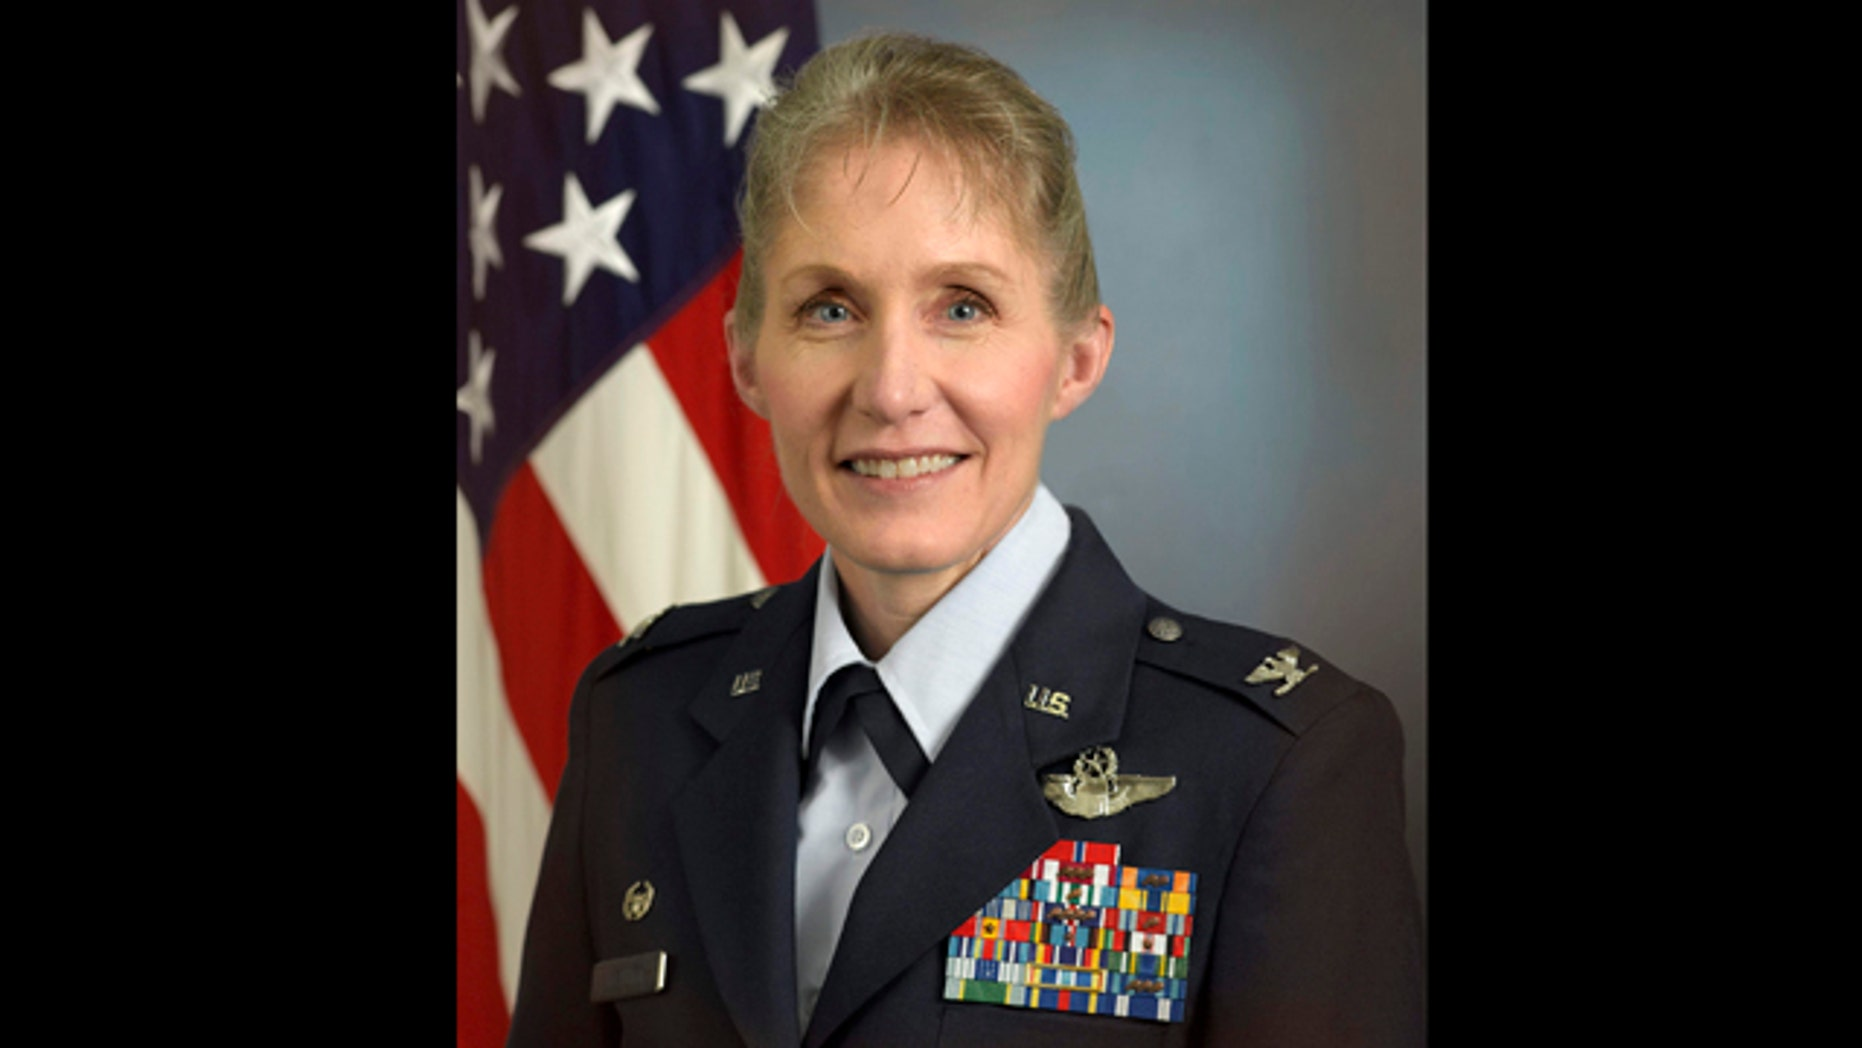 June 23, 2011: Photo released by the U.S. Air Force of Col. Jeannie Leavitt.